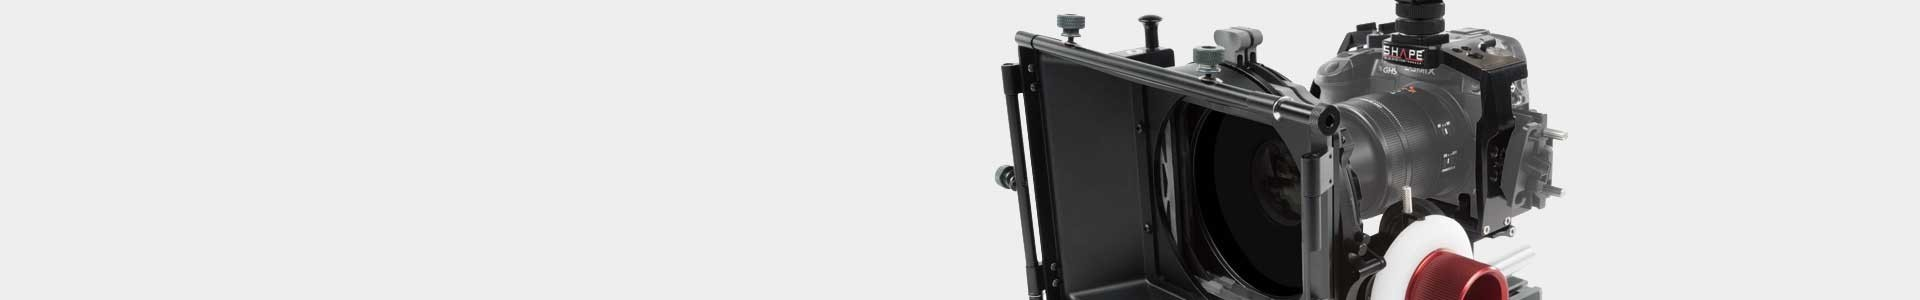 Accessories for professional Film and Video Cameras - Avacab